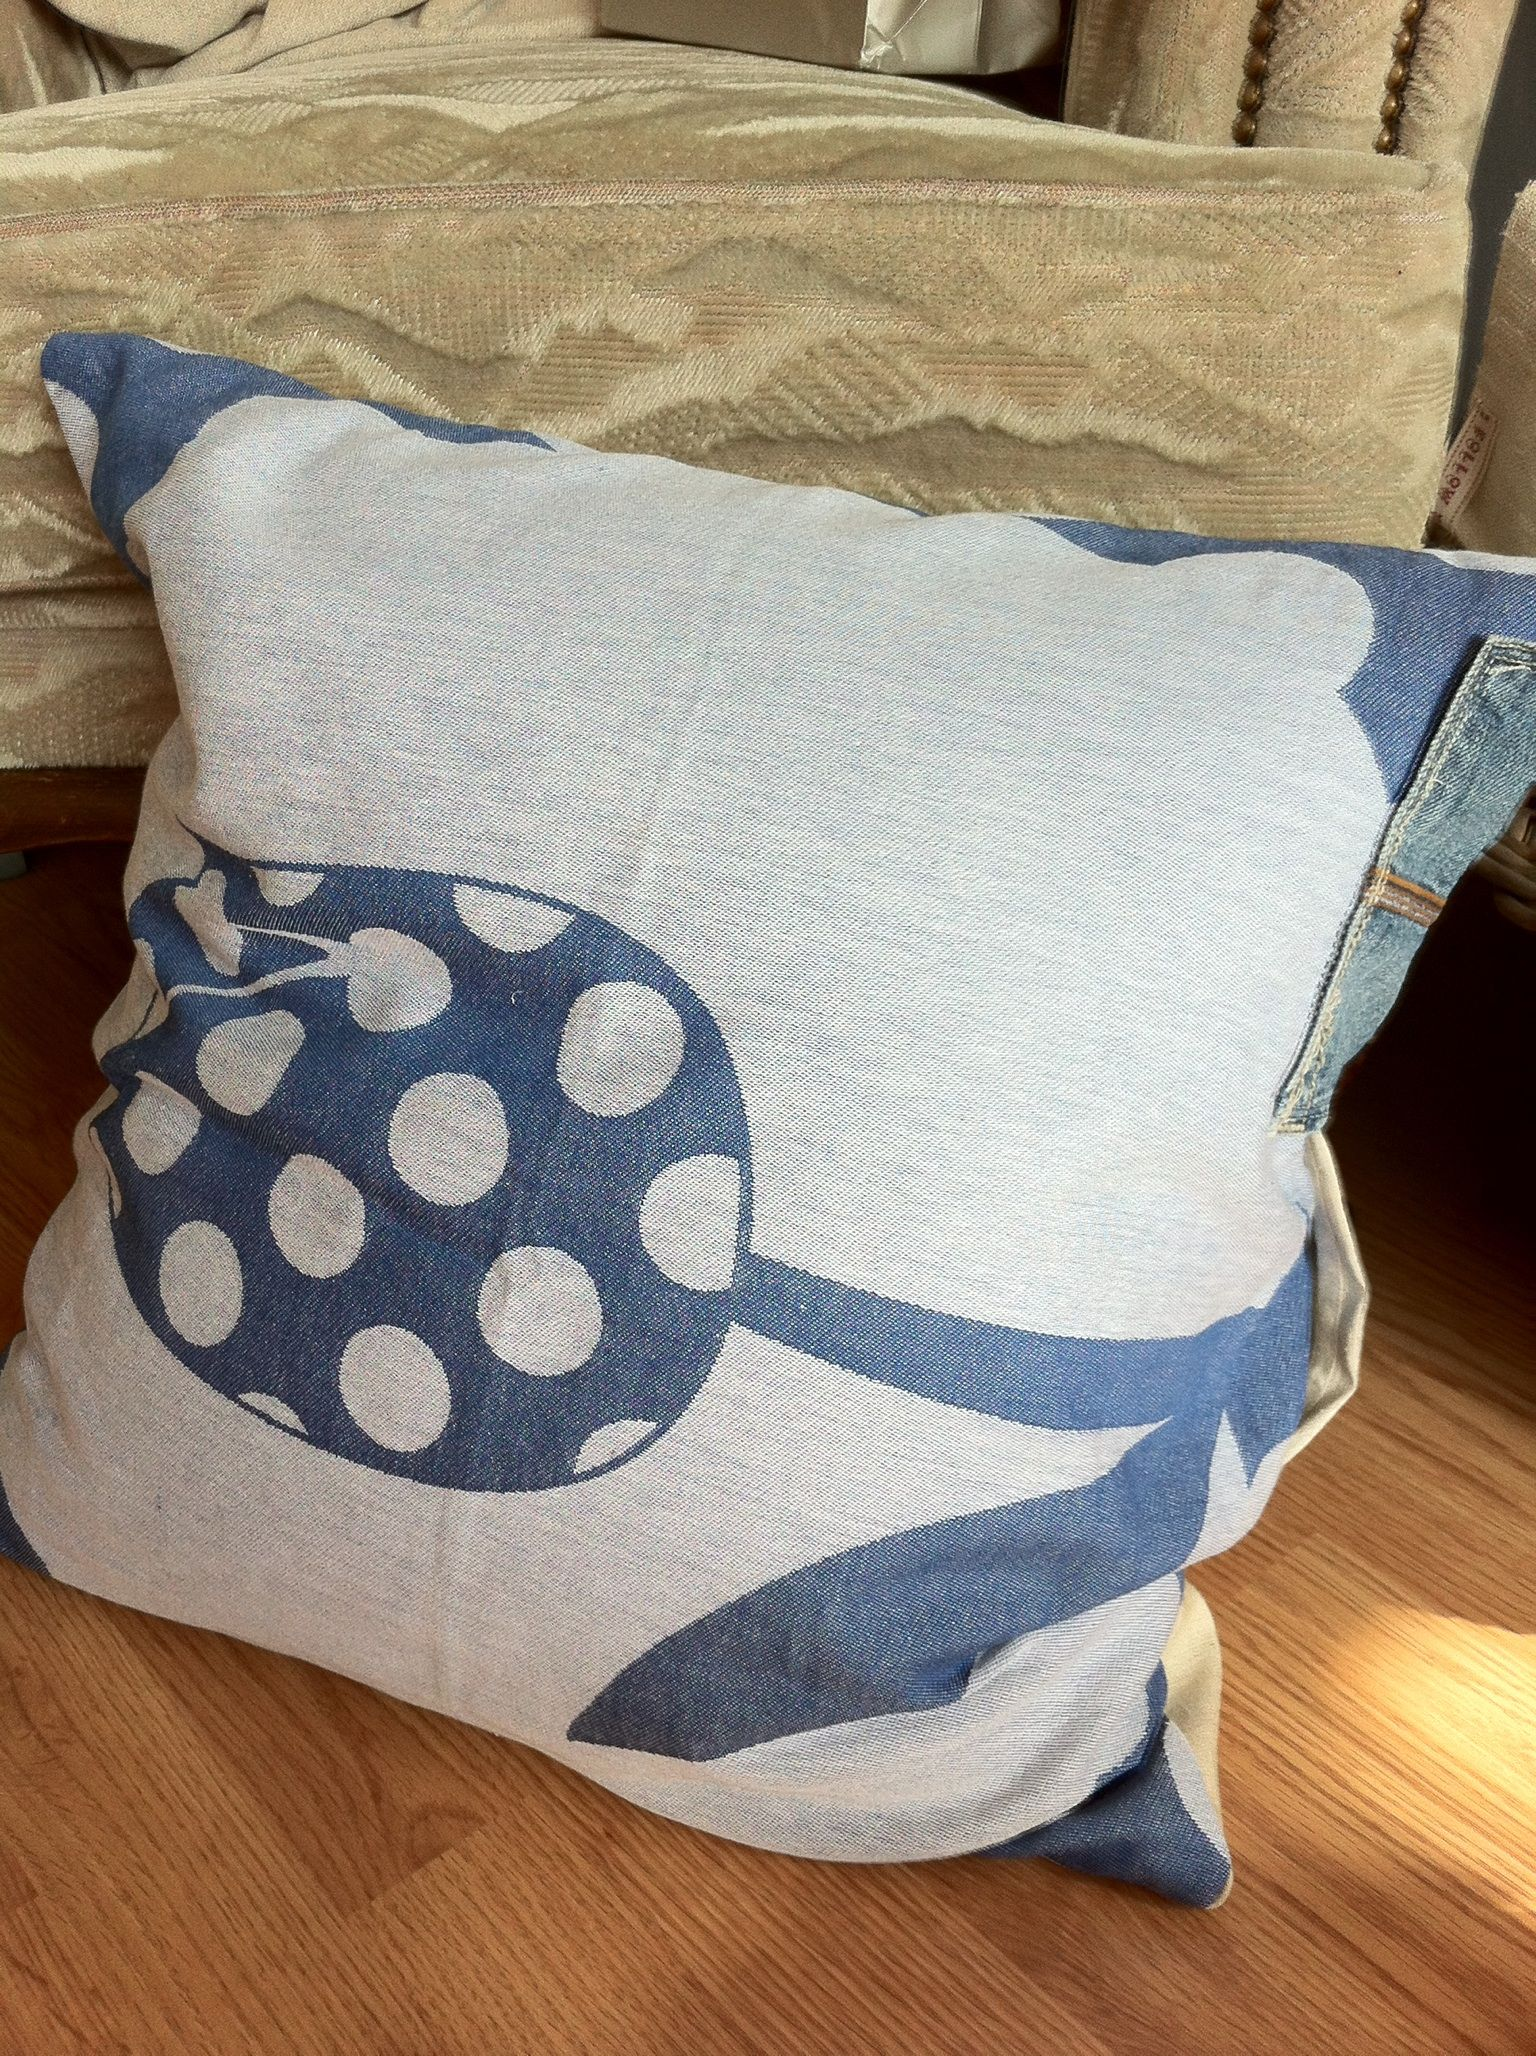 Home Made Pillow With Old Linen, Tea Towel And Jeans